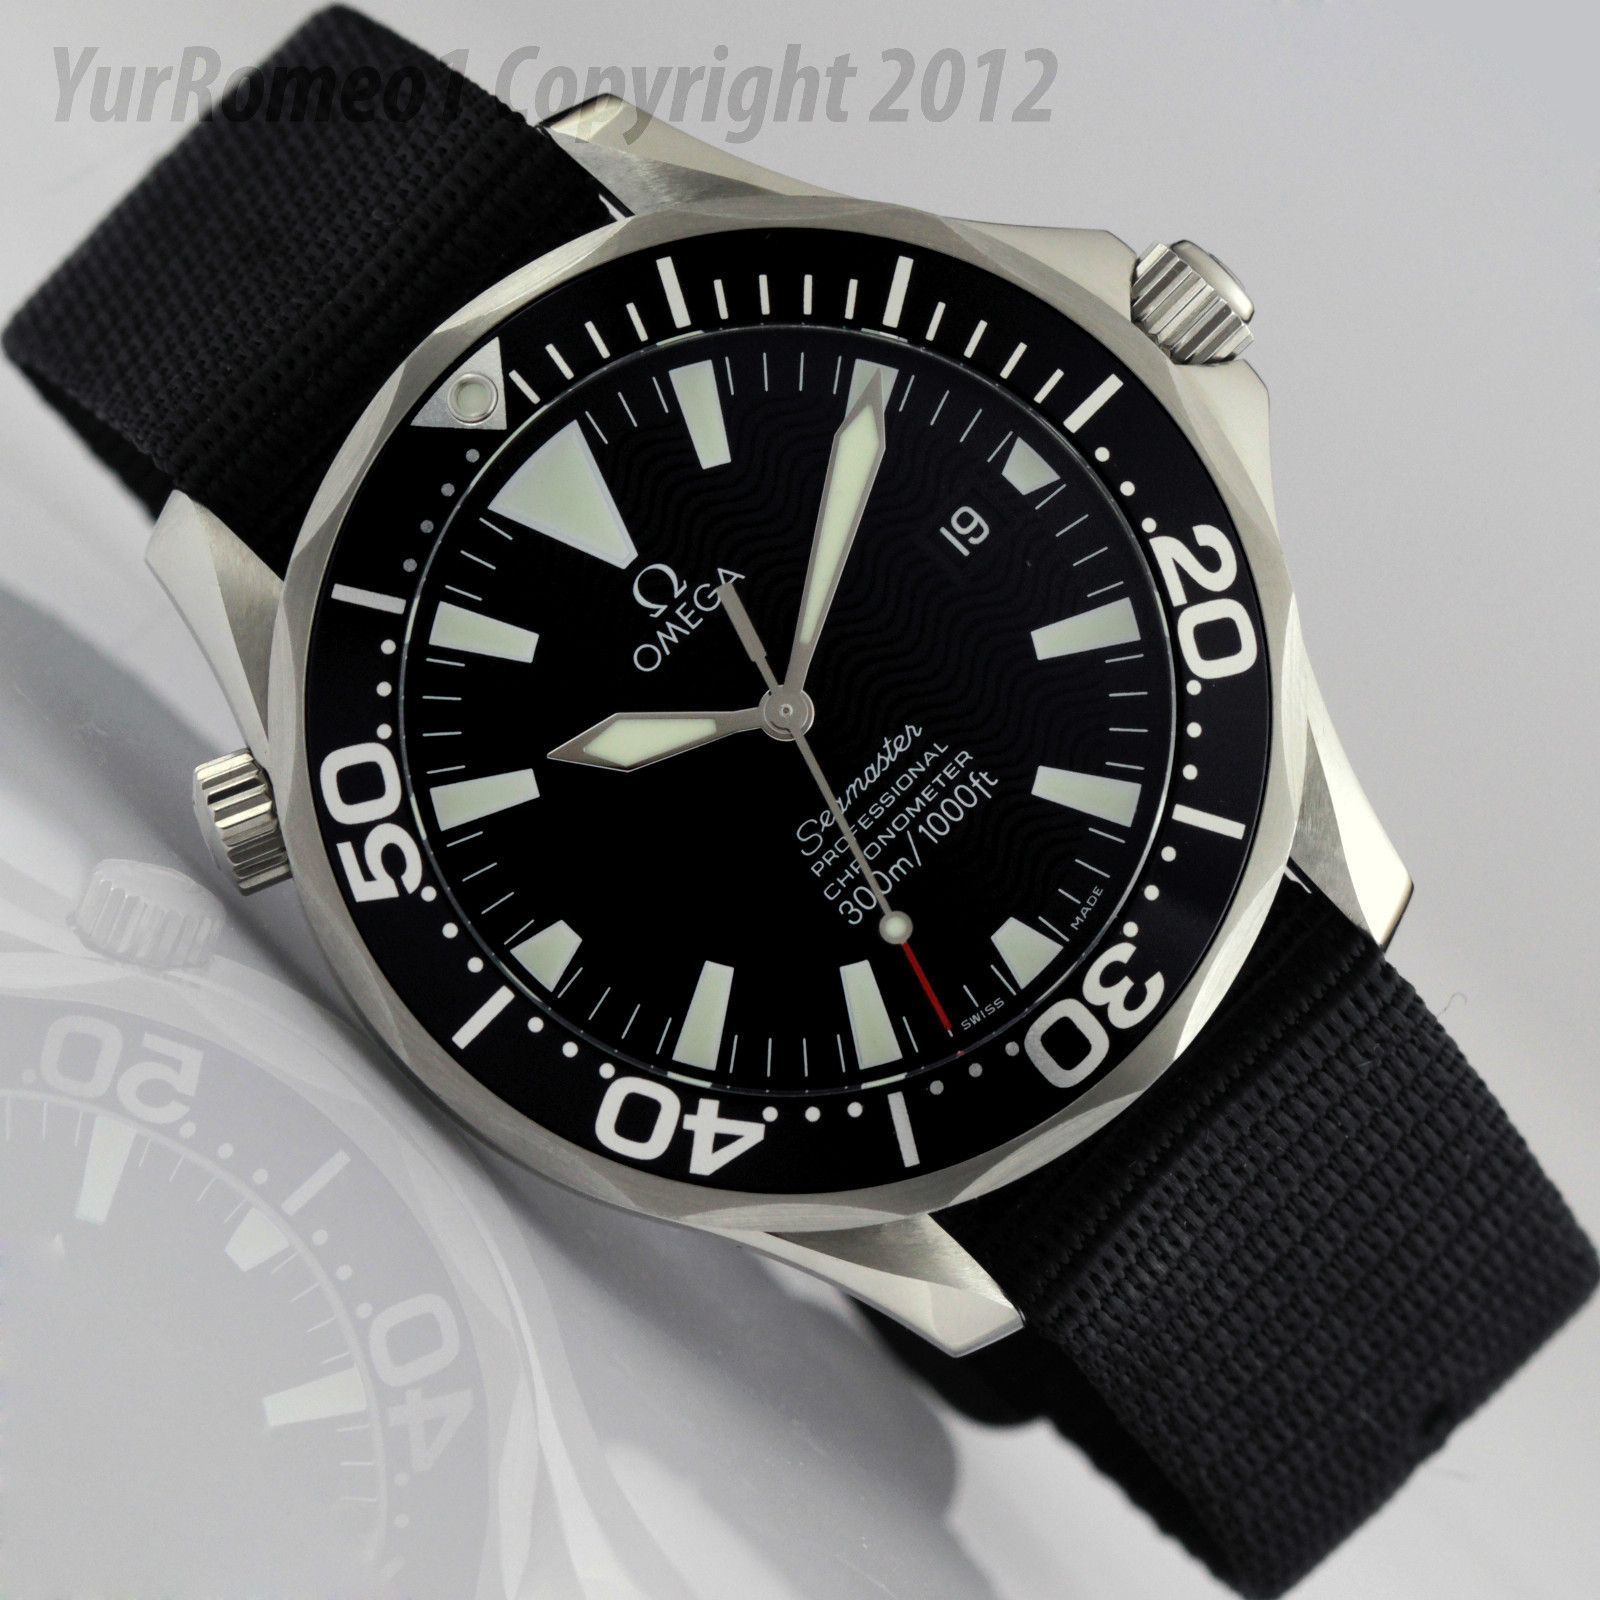 fff68ef0b30 Omega Seamaster Professional Chronometer Automatic 300m Black Dial 2254.50  - Best Omega Ever!